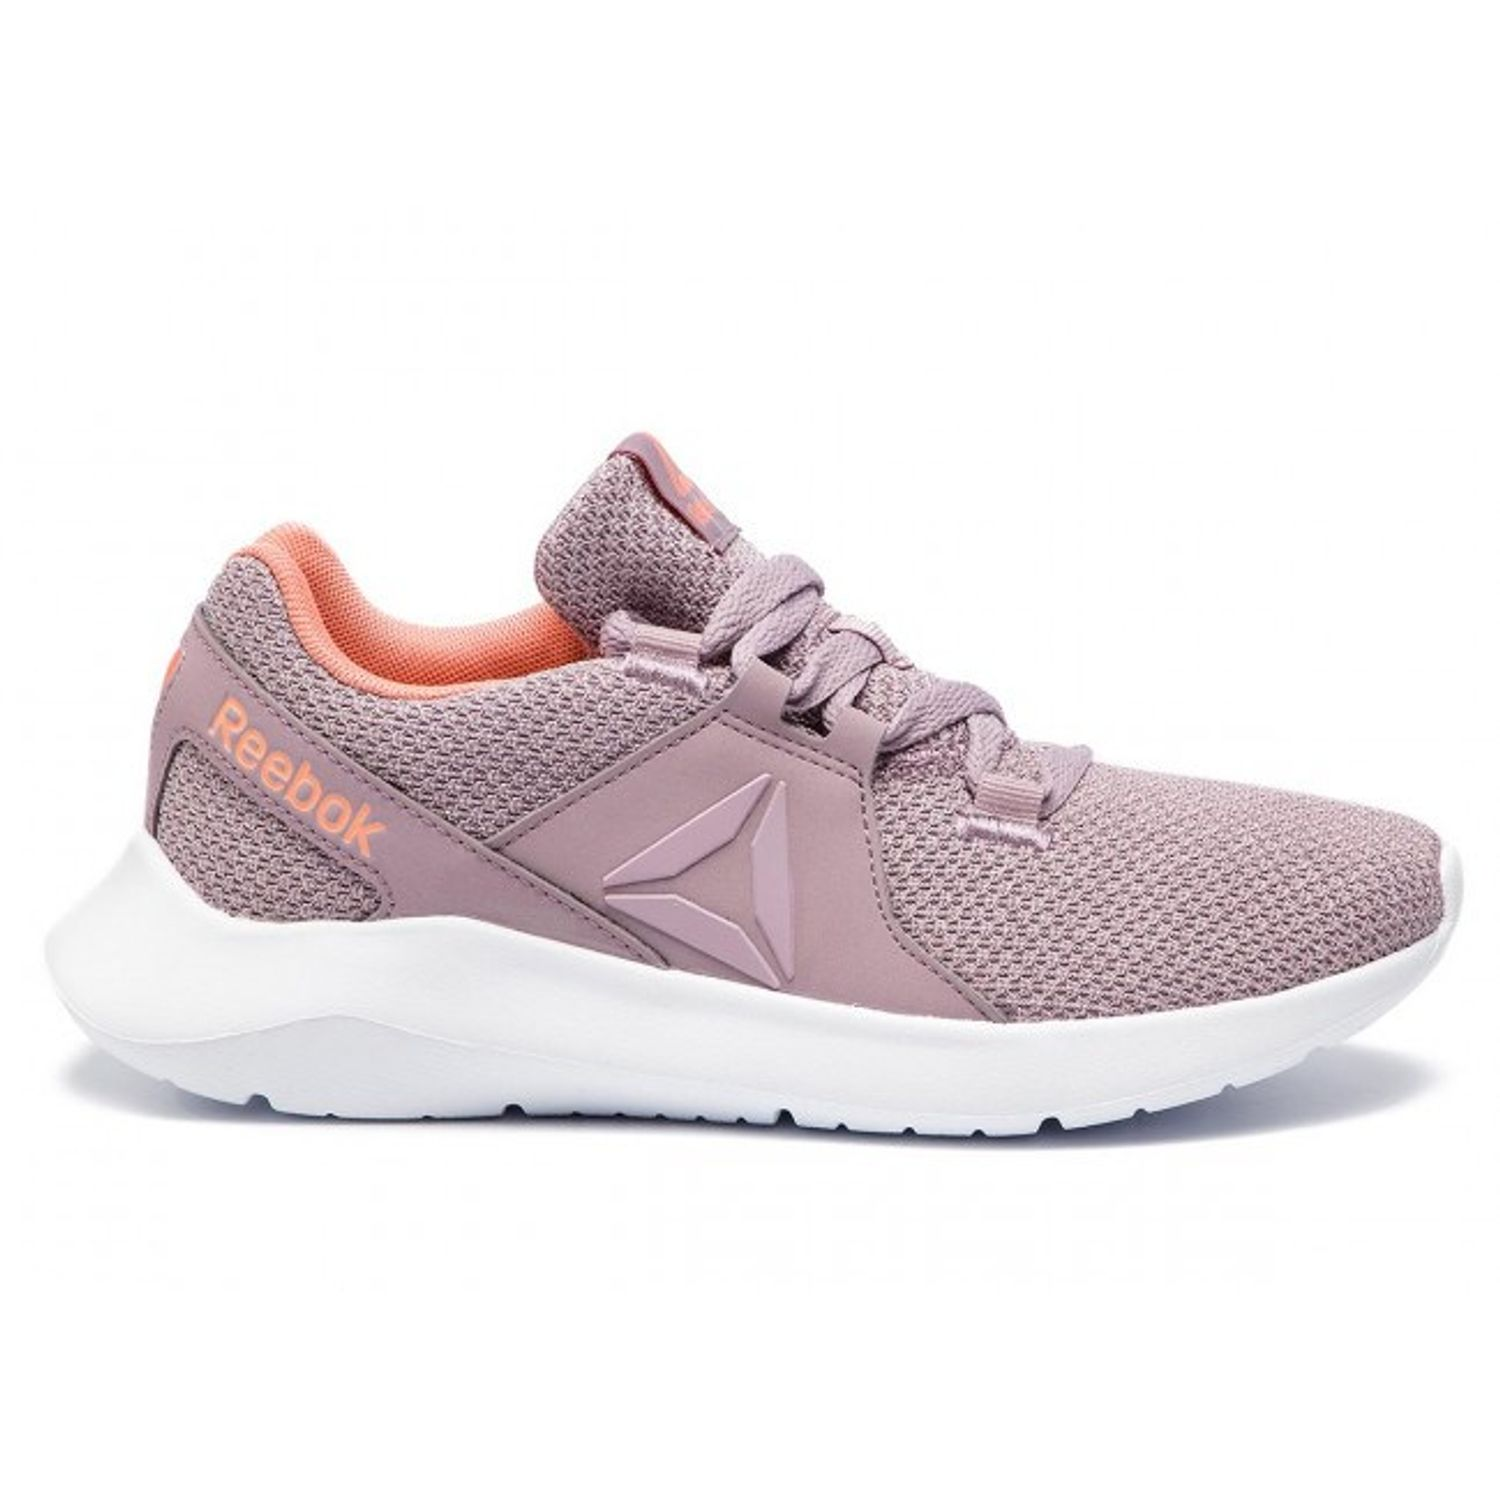 5c055be80 sporting · MUJER · Zapatillas. CN6755 037 standard  CN6755 037 standard   CN6755 037 standard  CN6755 037 standard. REEBOK